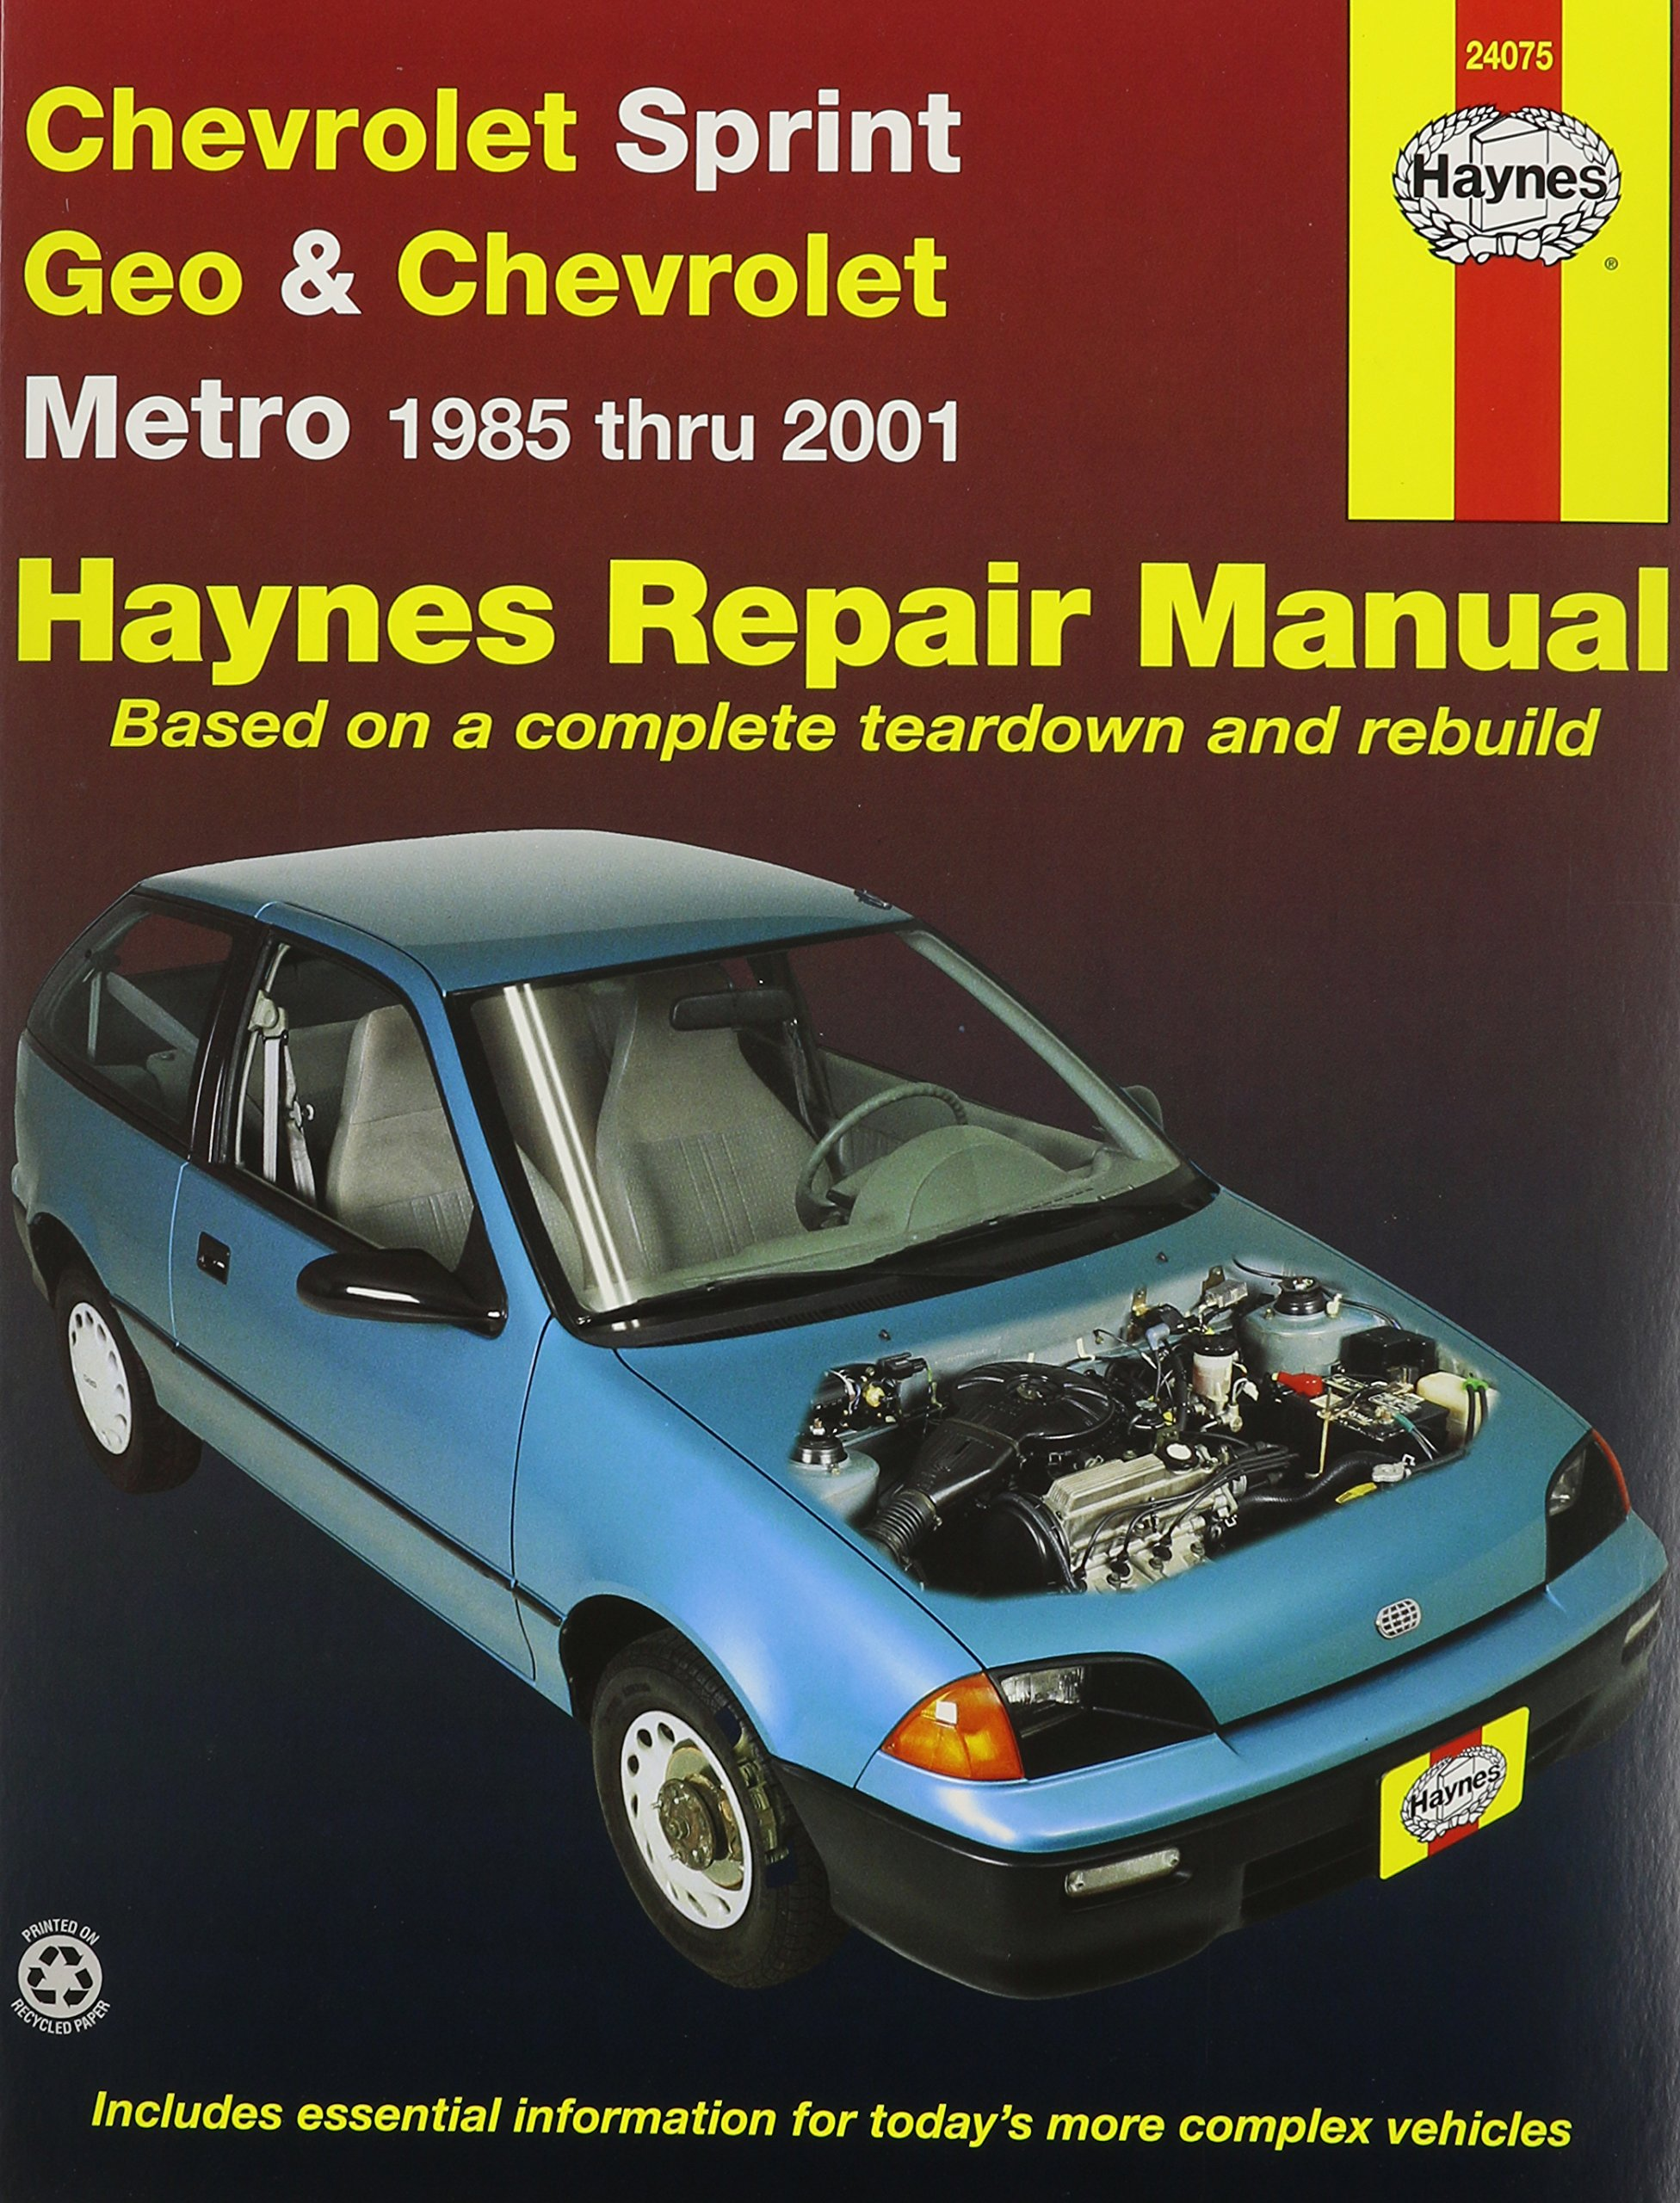 Chiltons Wiring Diagram Geo Metro Data Diagrams 1990 Prizm Fuse Box Amazon Com Haynes Manuals 24075 Chev Sprint 85 01 Rh 1995